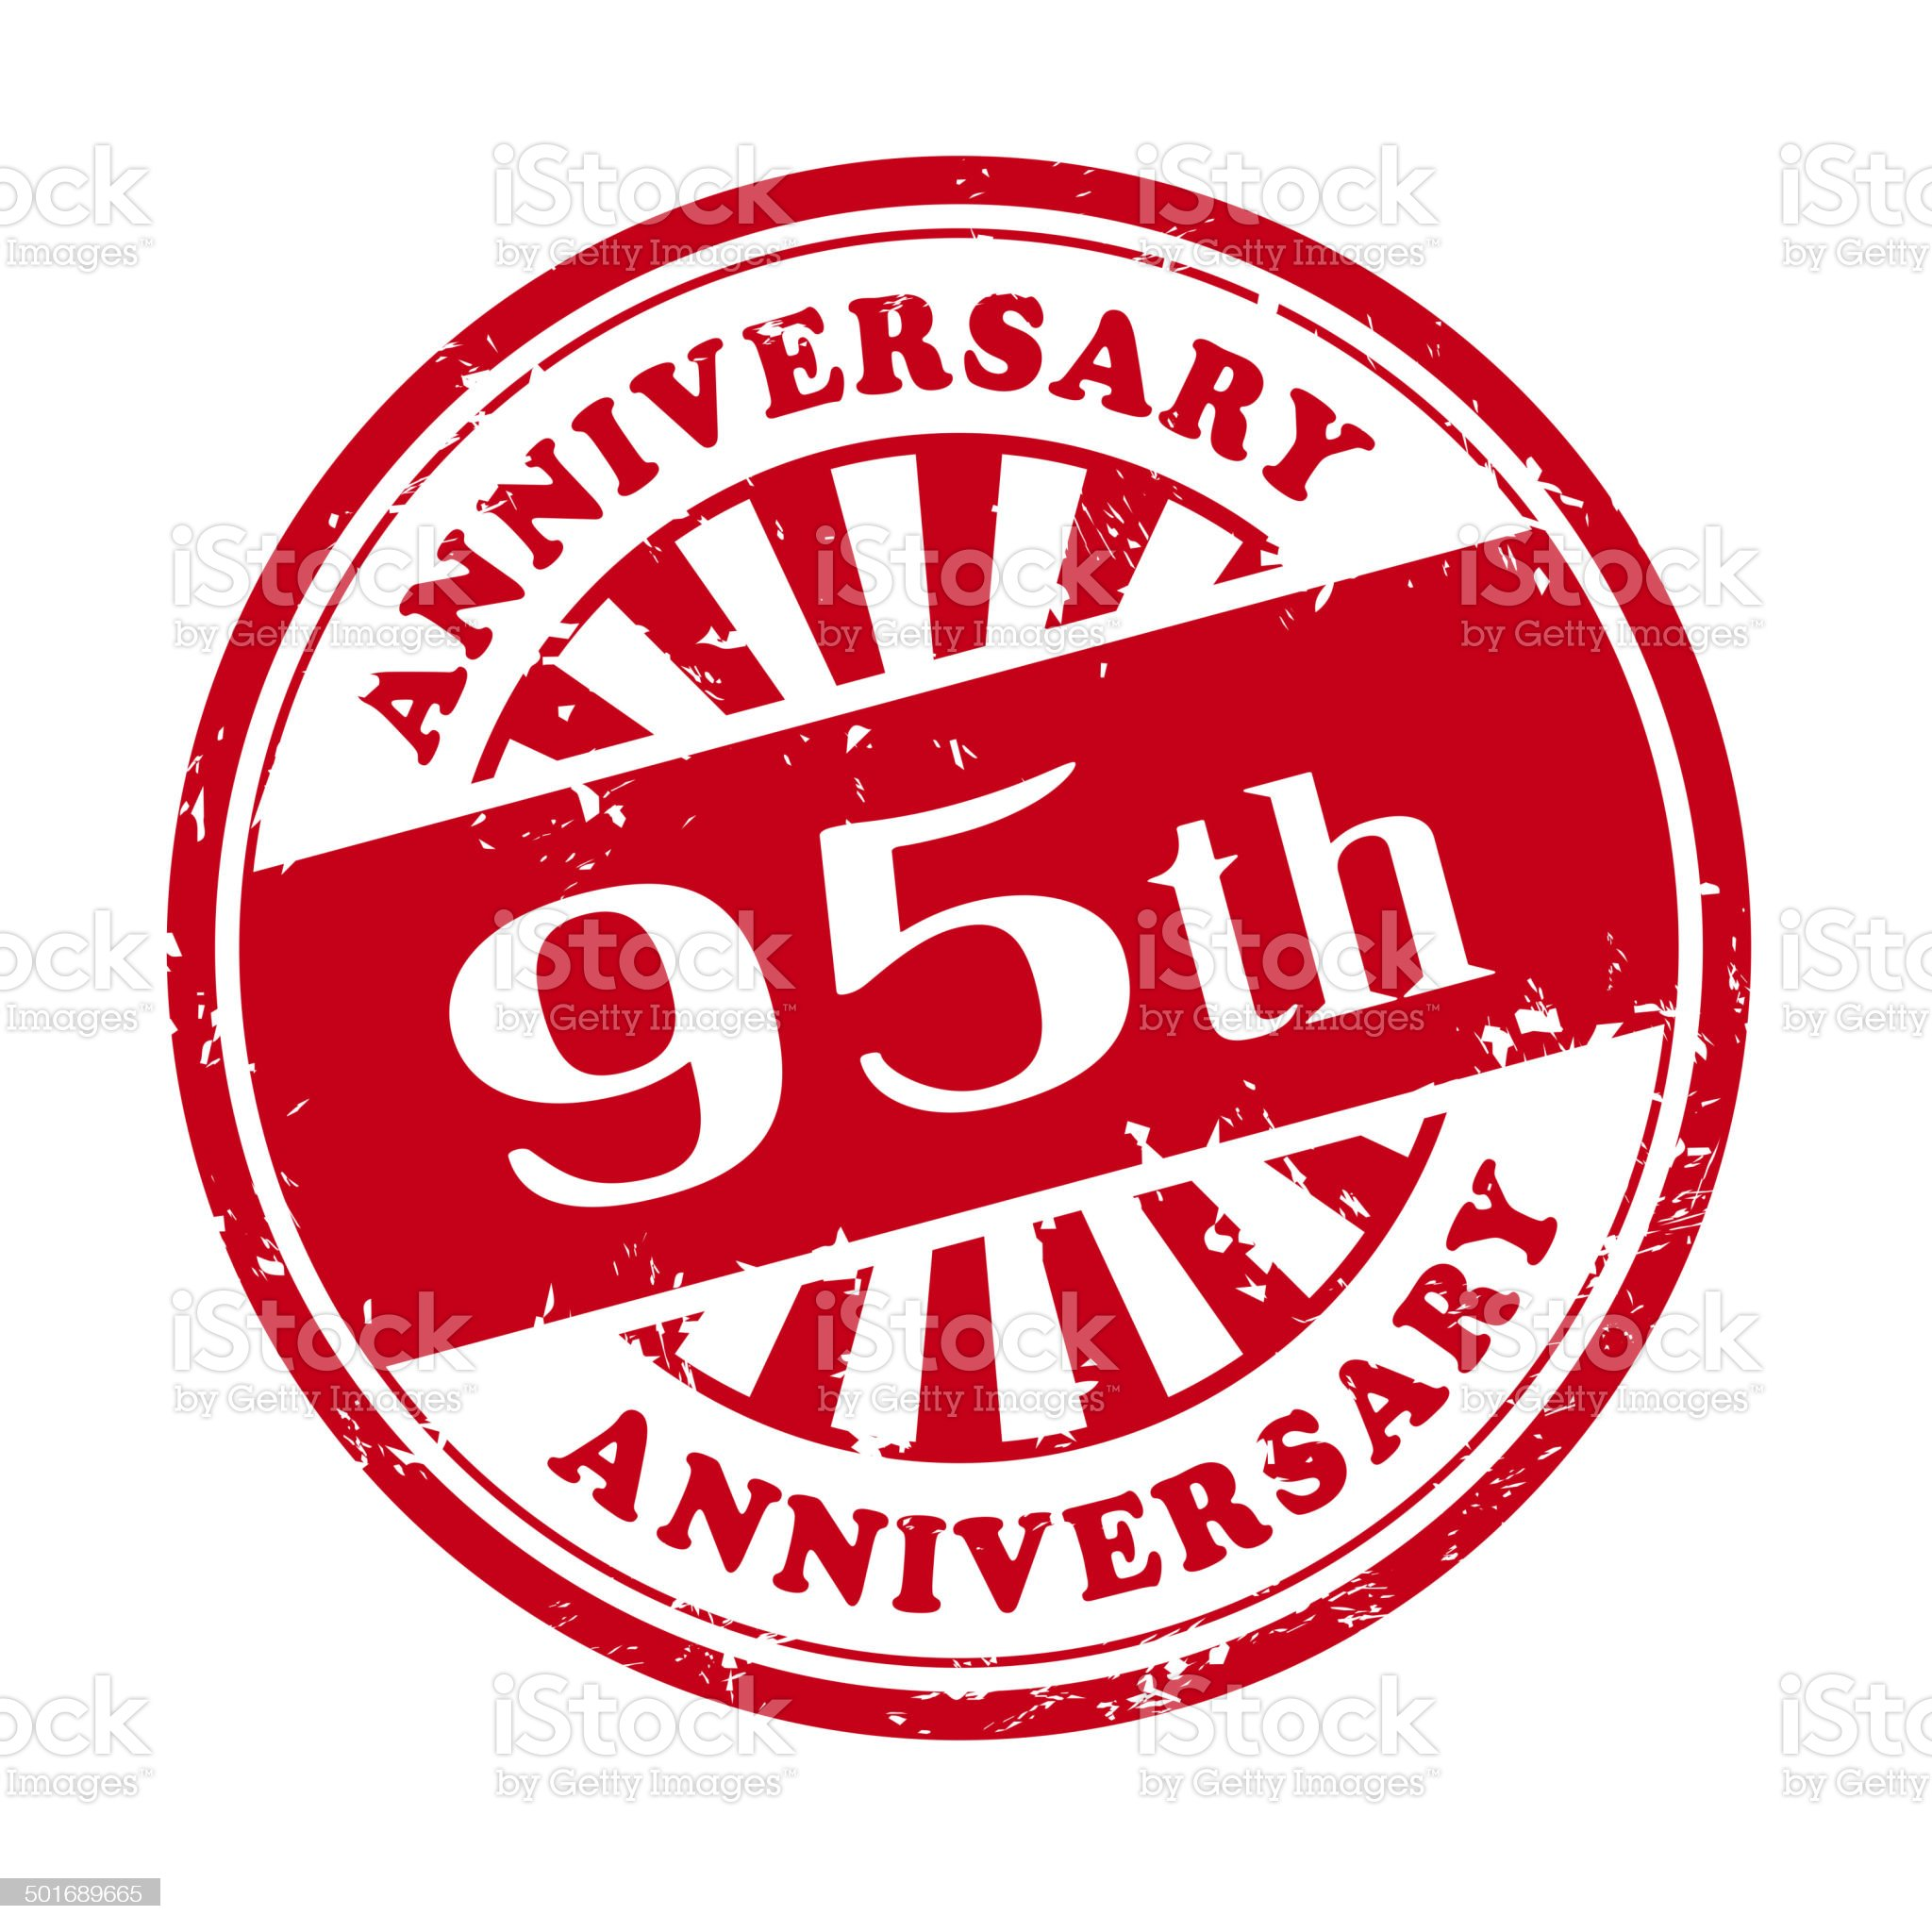 95th anniversary grunge rubber stamp royalty-free stock vector art